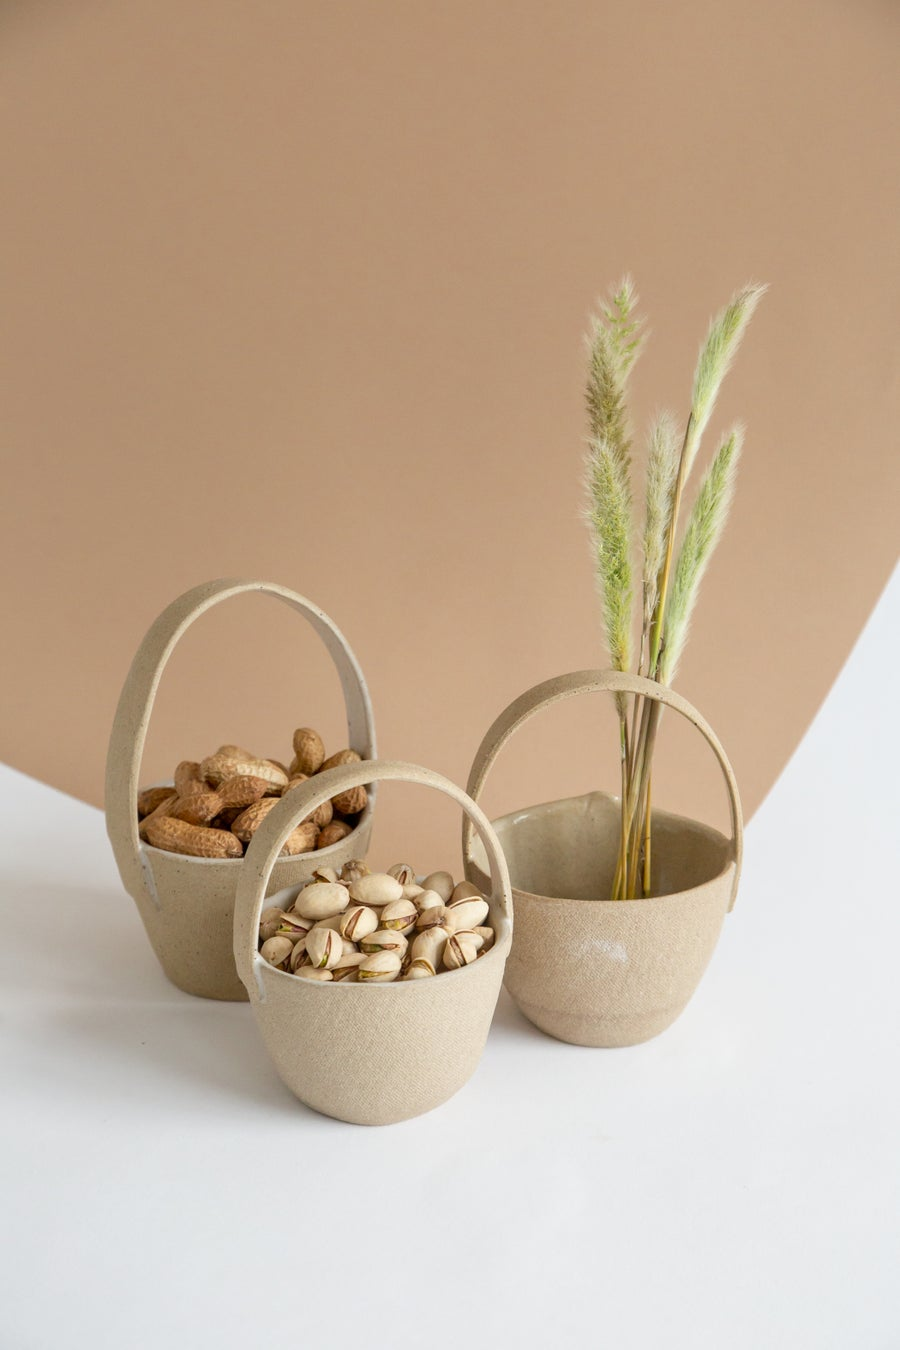 Image of Small Round Tan Ceramic Baskets